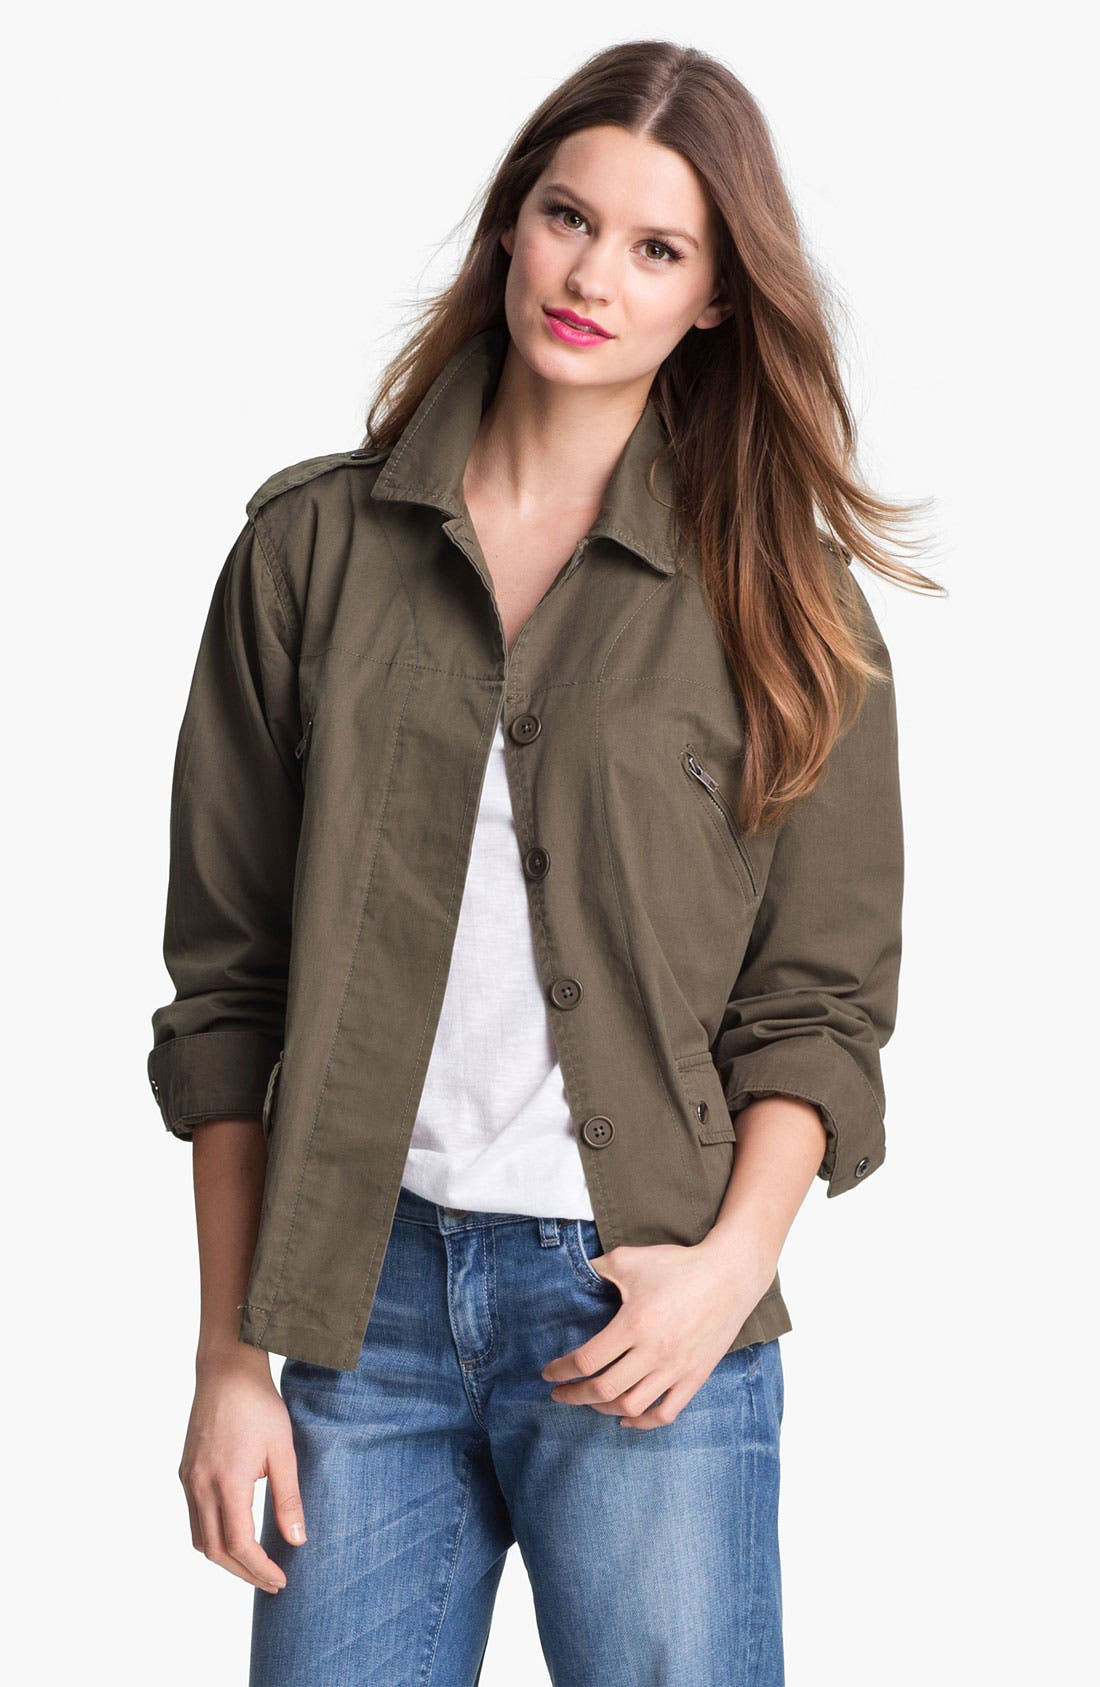 Alternate Image 1 Selected - KUT from the Kloth Army Jacket